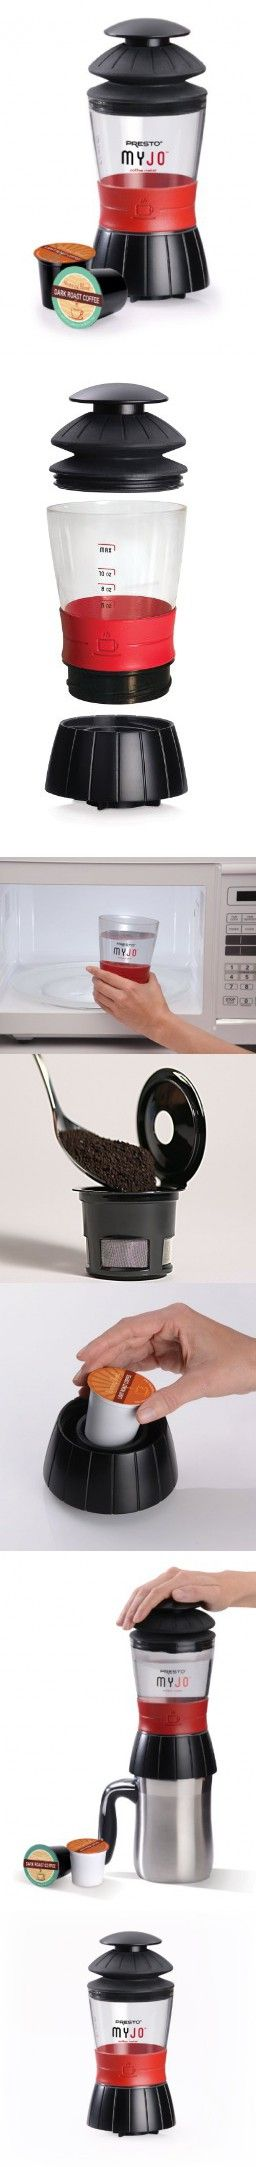 Brookstone Coffee Maker For One : 1000+ ideas about Single Cup Coffee Maker on Pinterest Single Serve Coffee, Dolce Gusto and ...